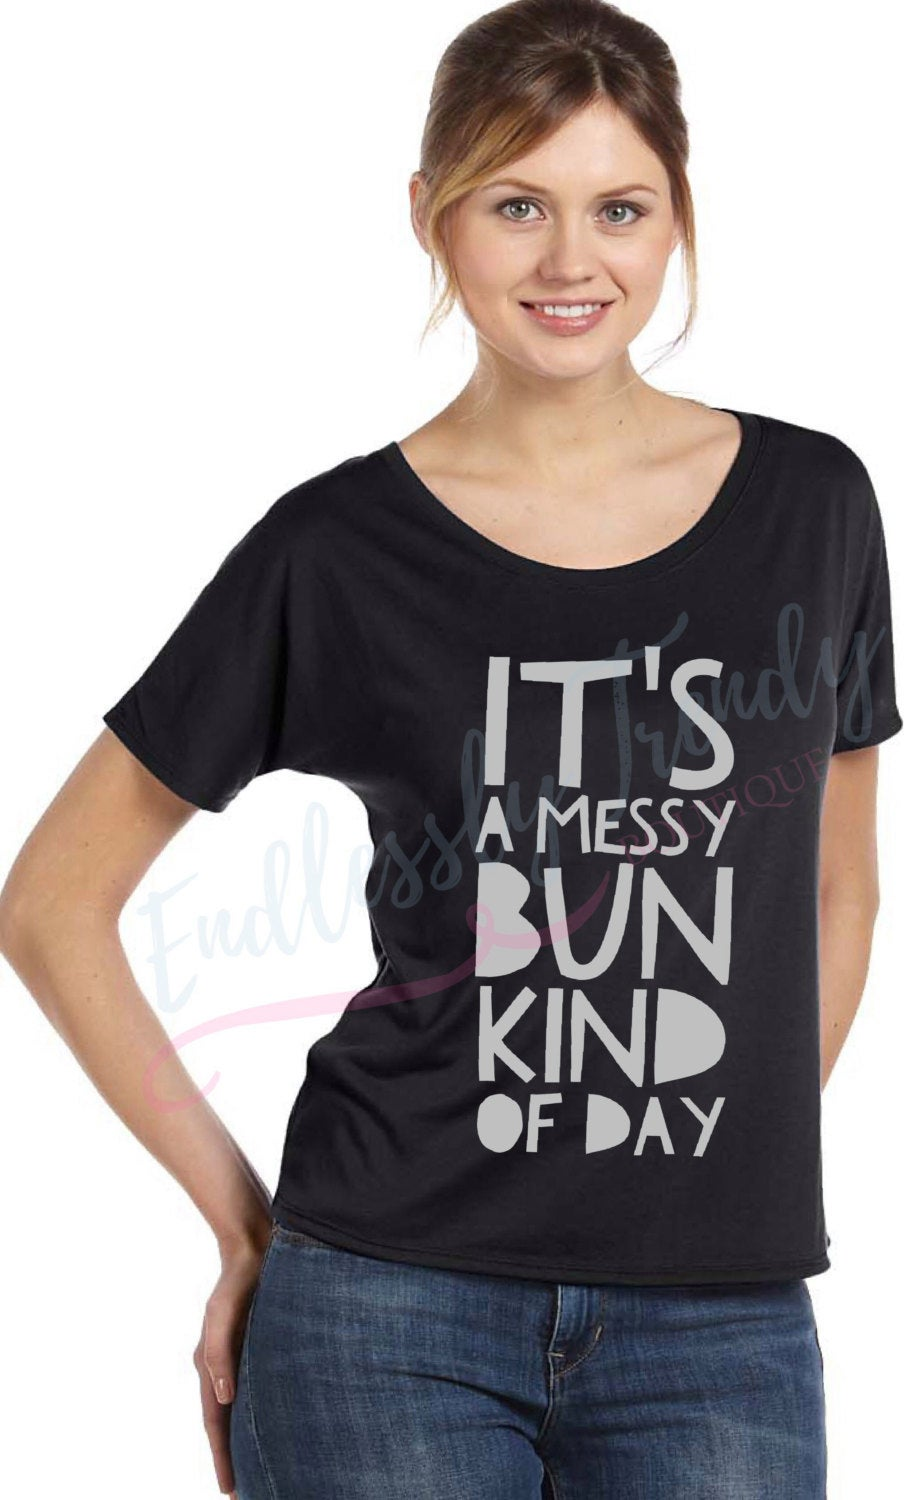 It's a Messy Bun Kind of Day Tee - - Endlessly Trendy Boutique